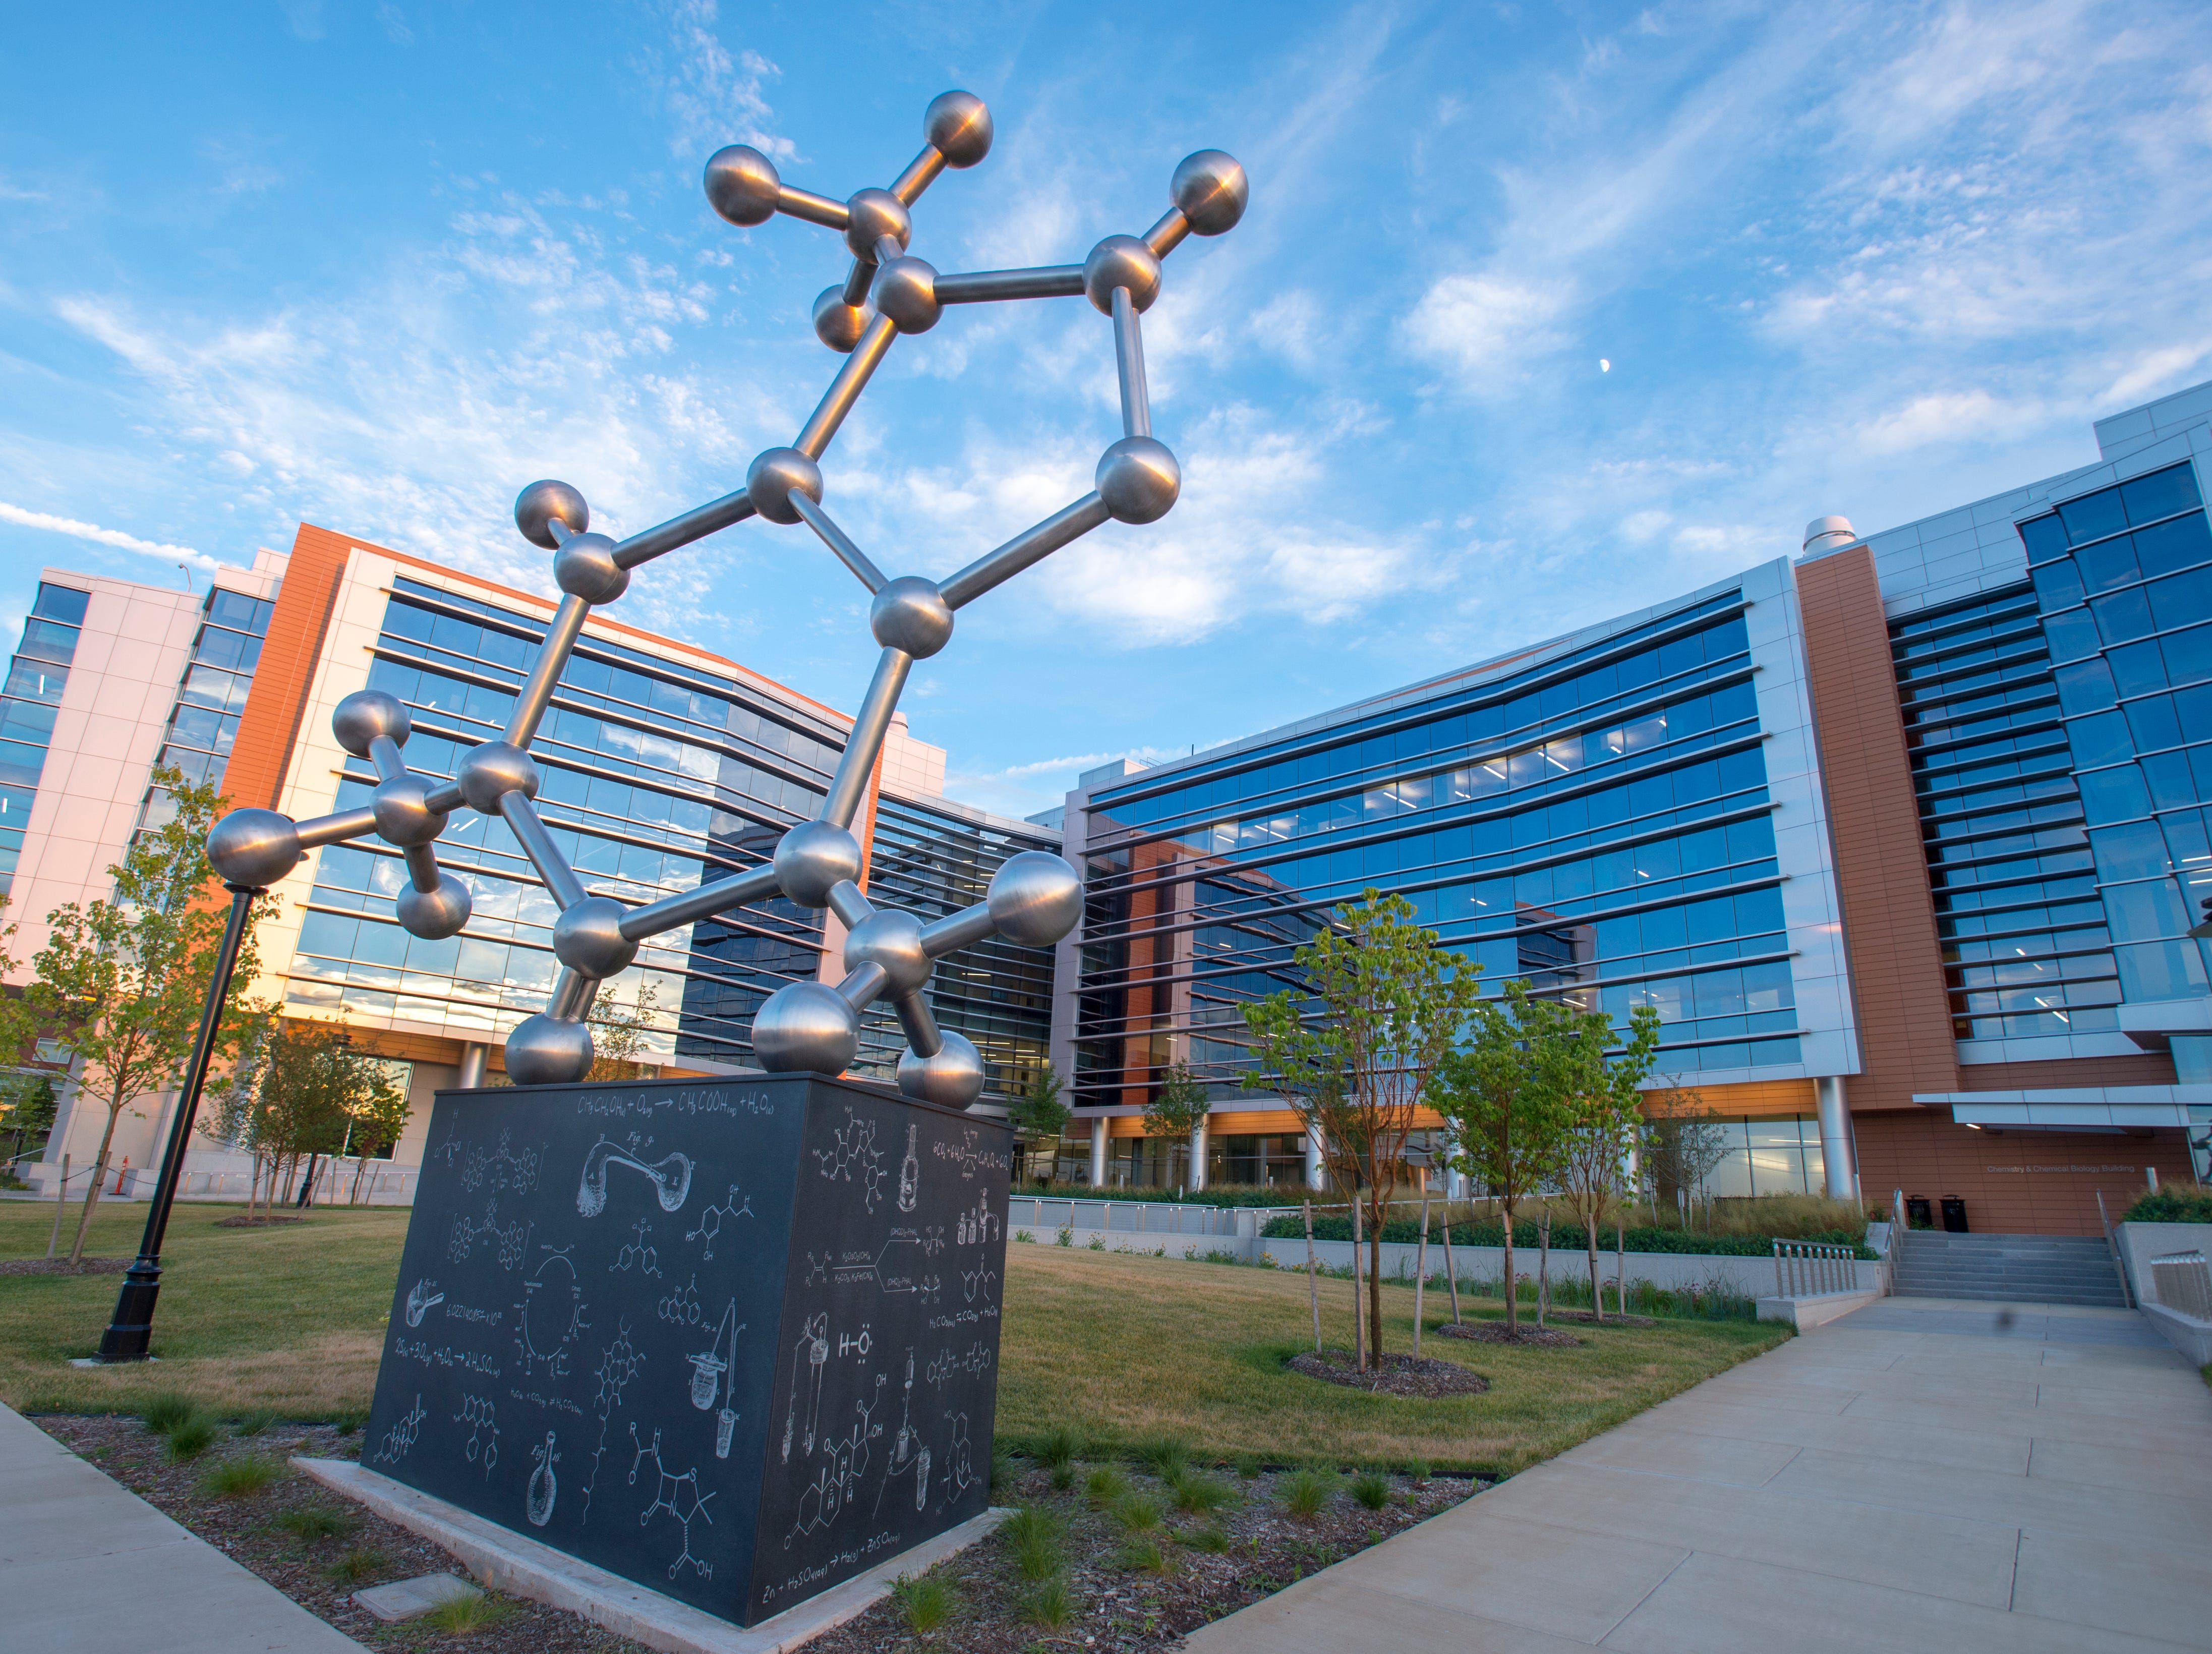 """The PhD Molecule"" sculpture of a caffeine molecule by artist Larry Kirkland stands outside Rutgers University's new Chemistry and Chemical Biology building in New Brunswick."